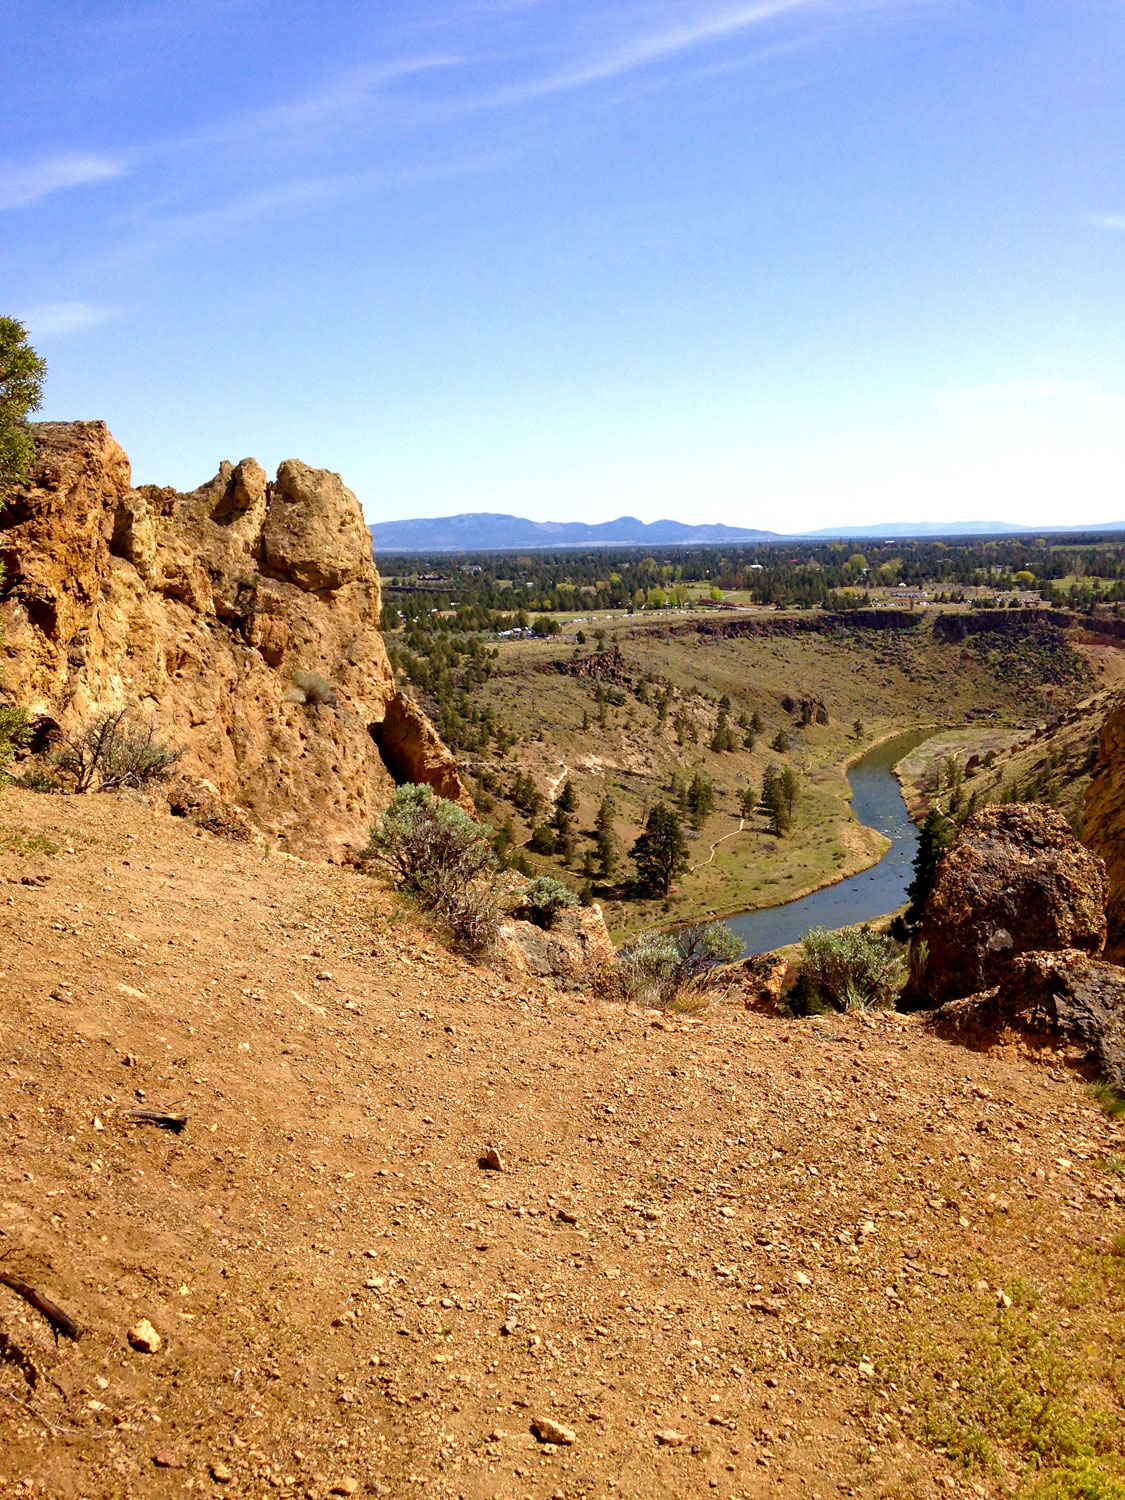 Views of the Crooked River below from the Summit Trail viewpoint at Smith Rock State Park.